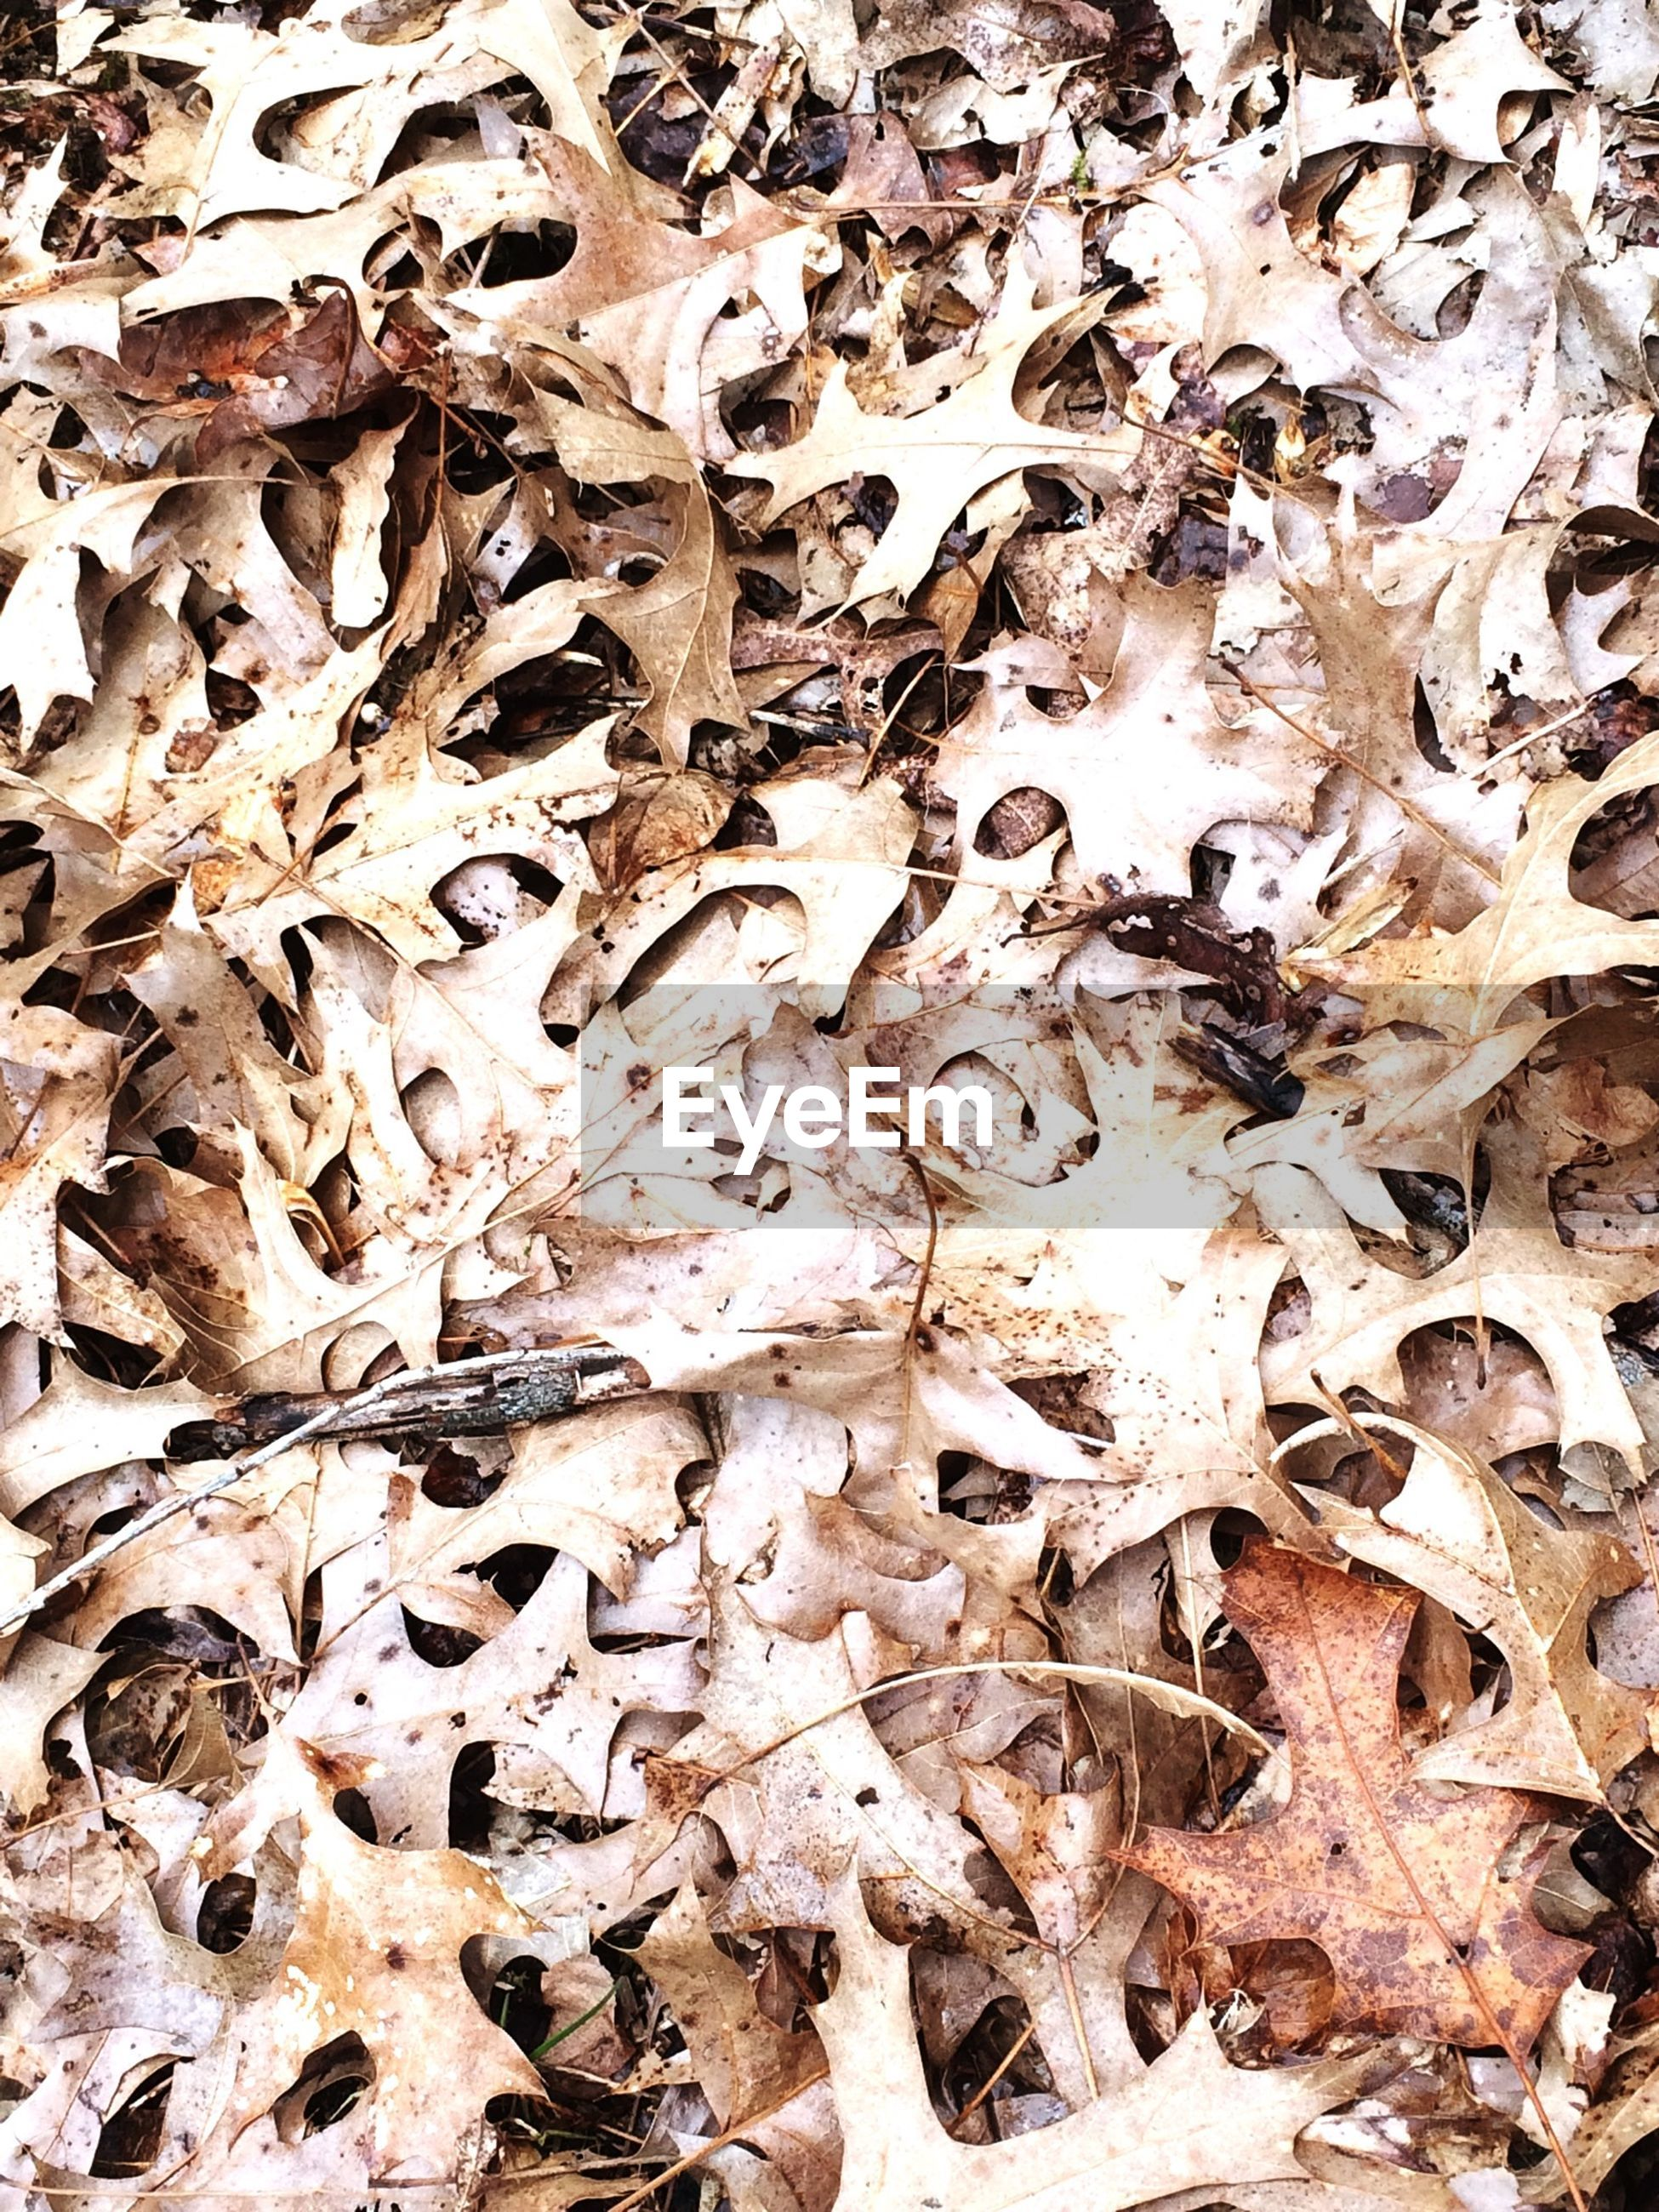 abundance, high angle view, full frame, leaf, dry, backgrounds, autumn, leaves, day, messy, nature, large group of objects, outdoors, fallen, season, change, field, no people, ground, dirt